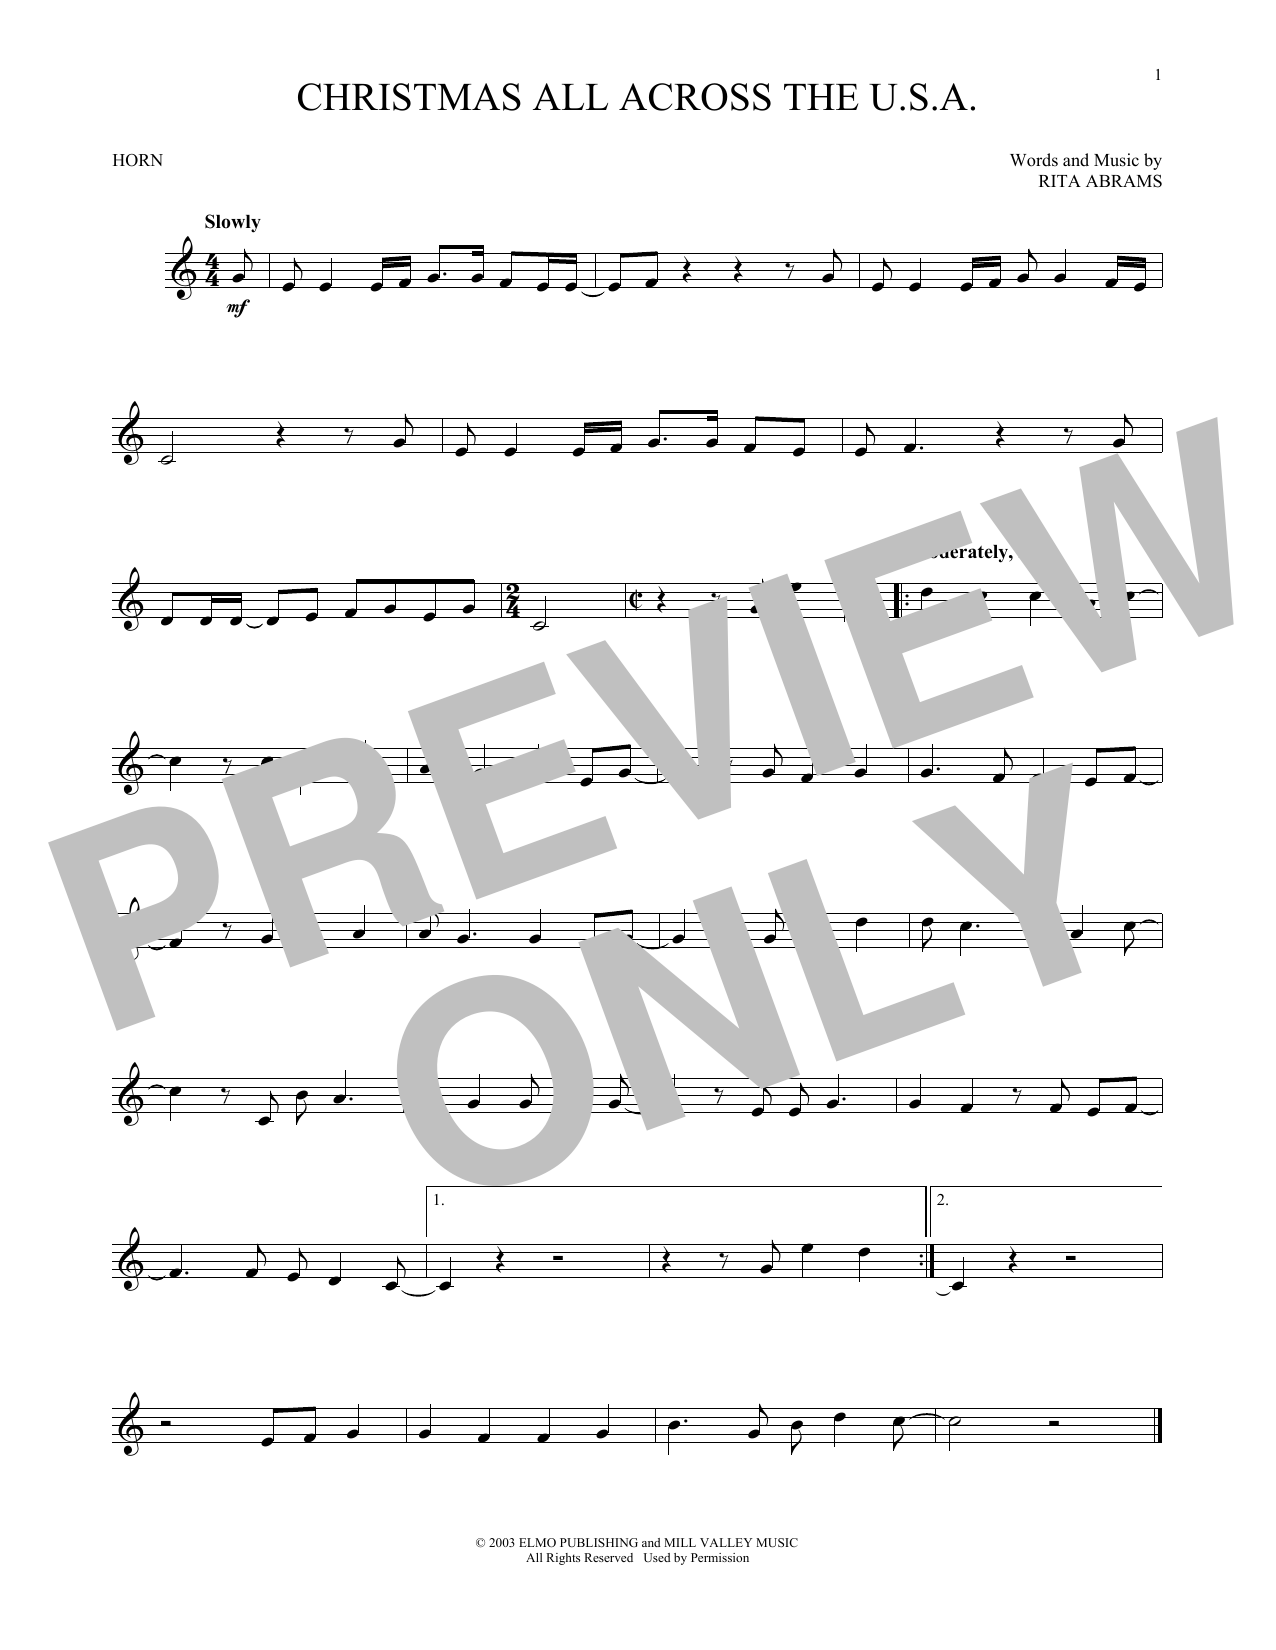 French Horn - Christmas Music at Stanton\'s Sheet Music